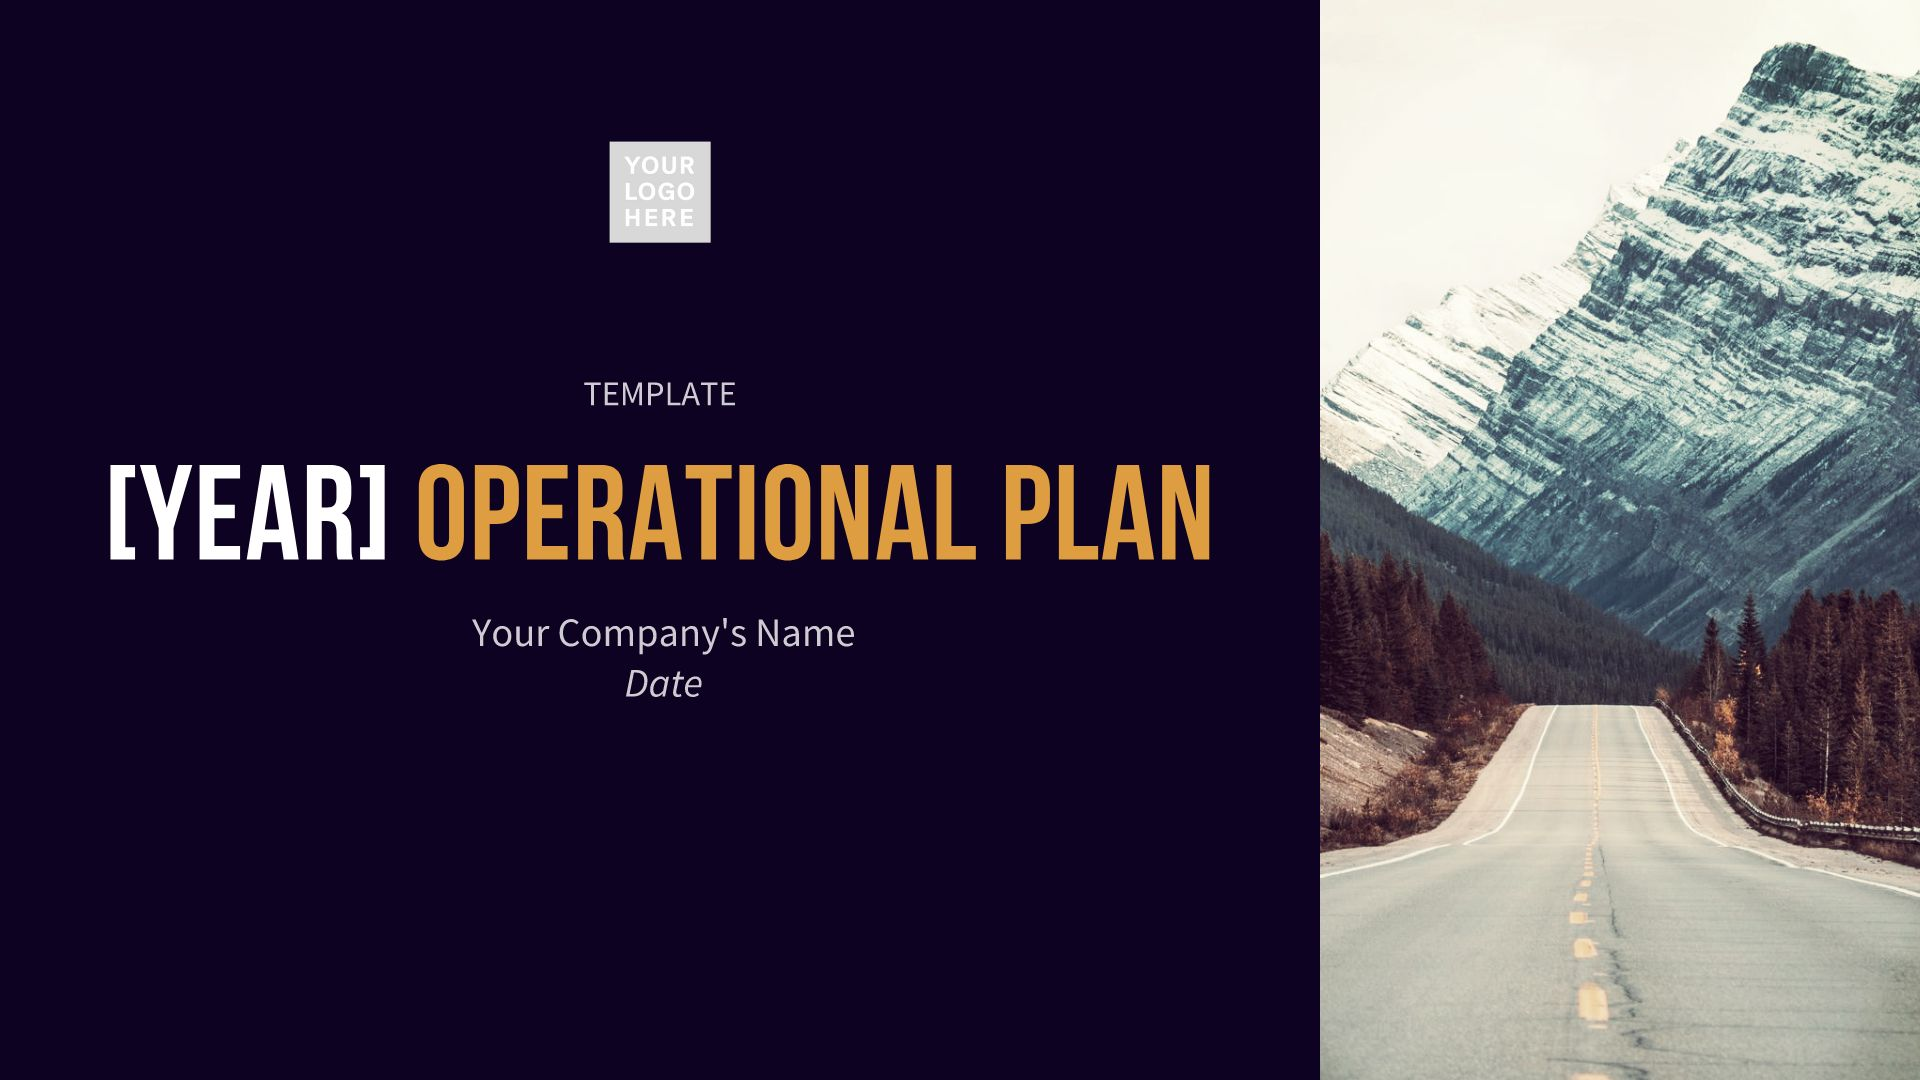 Operations Plan Presentation Template